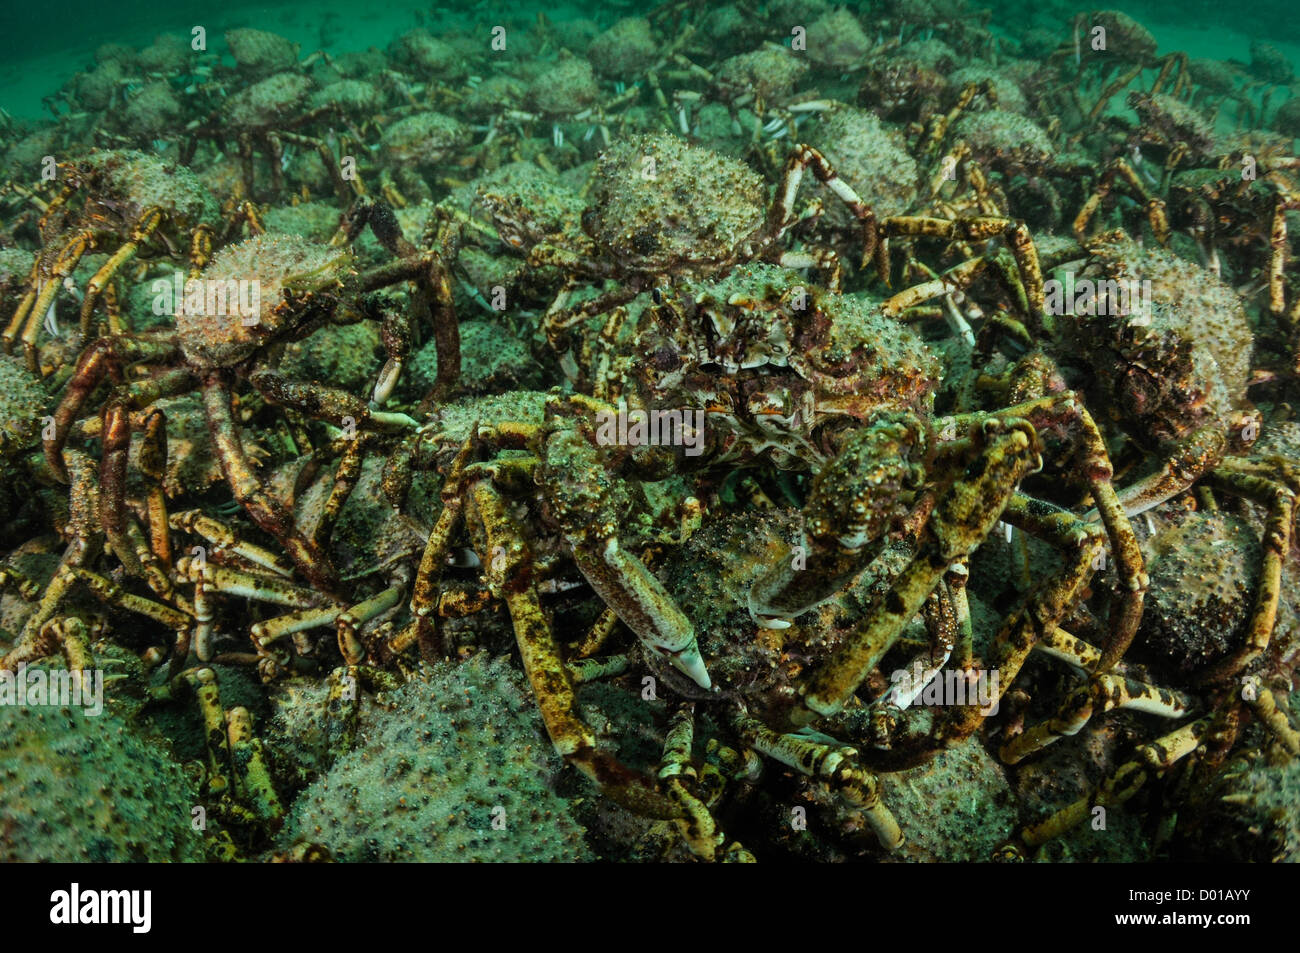 Spider Crab and Friends. - Stock Image